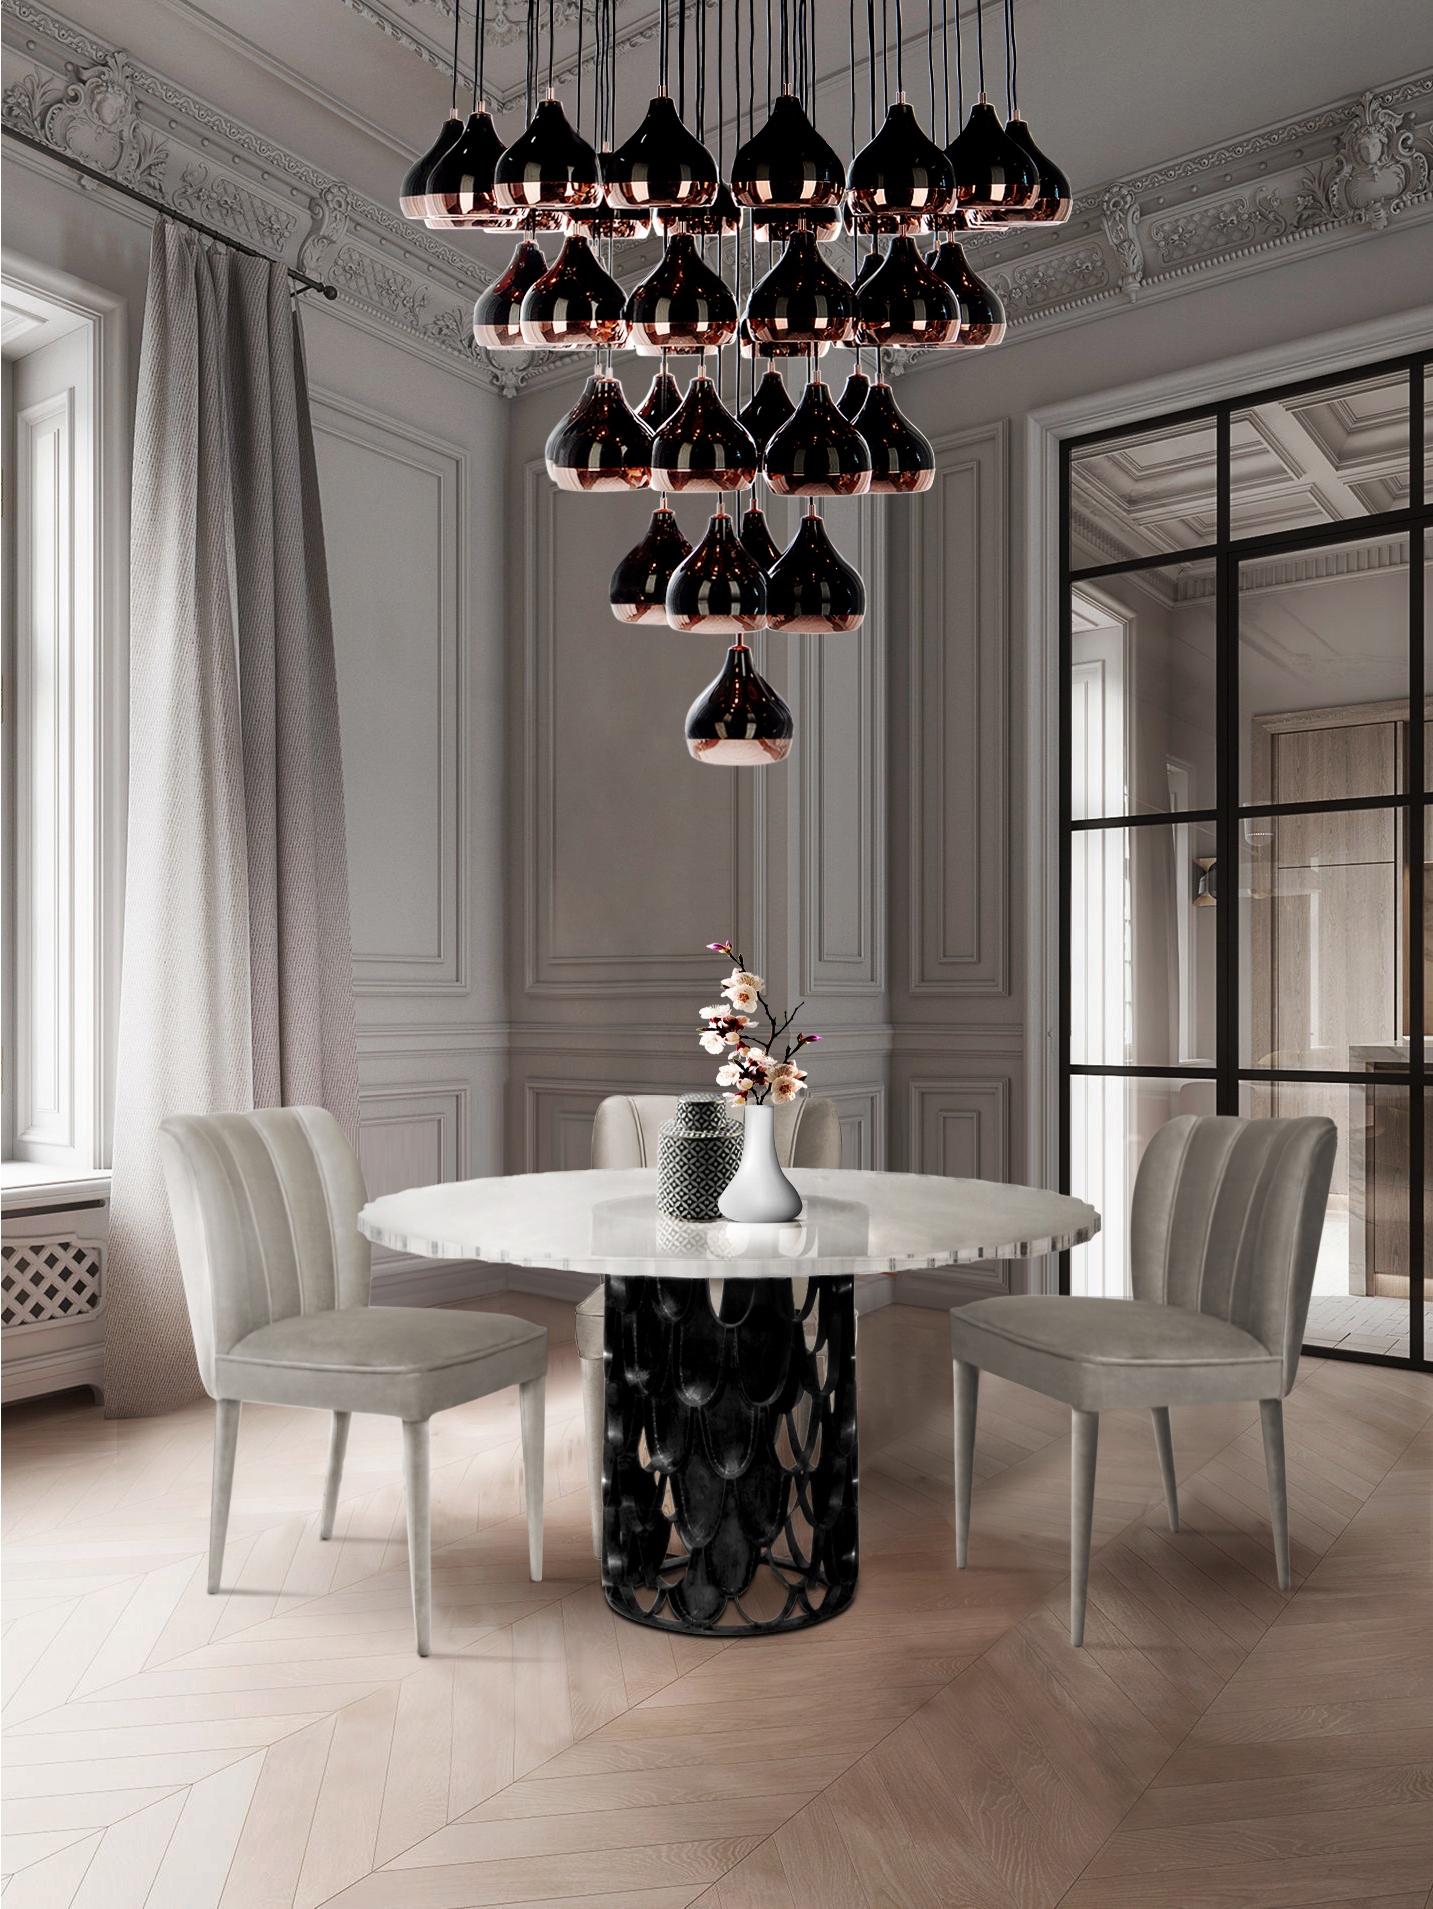 Let These Suspension Lamps be the Spotlight of Your Dining Table! suspension lamps Let These Suspension Lamps be the Spotlight of Your Dining Table! 5 6